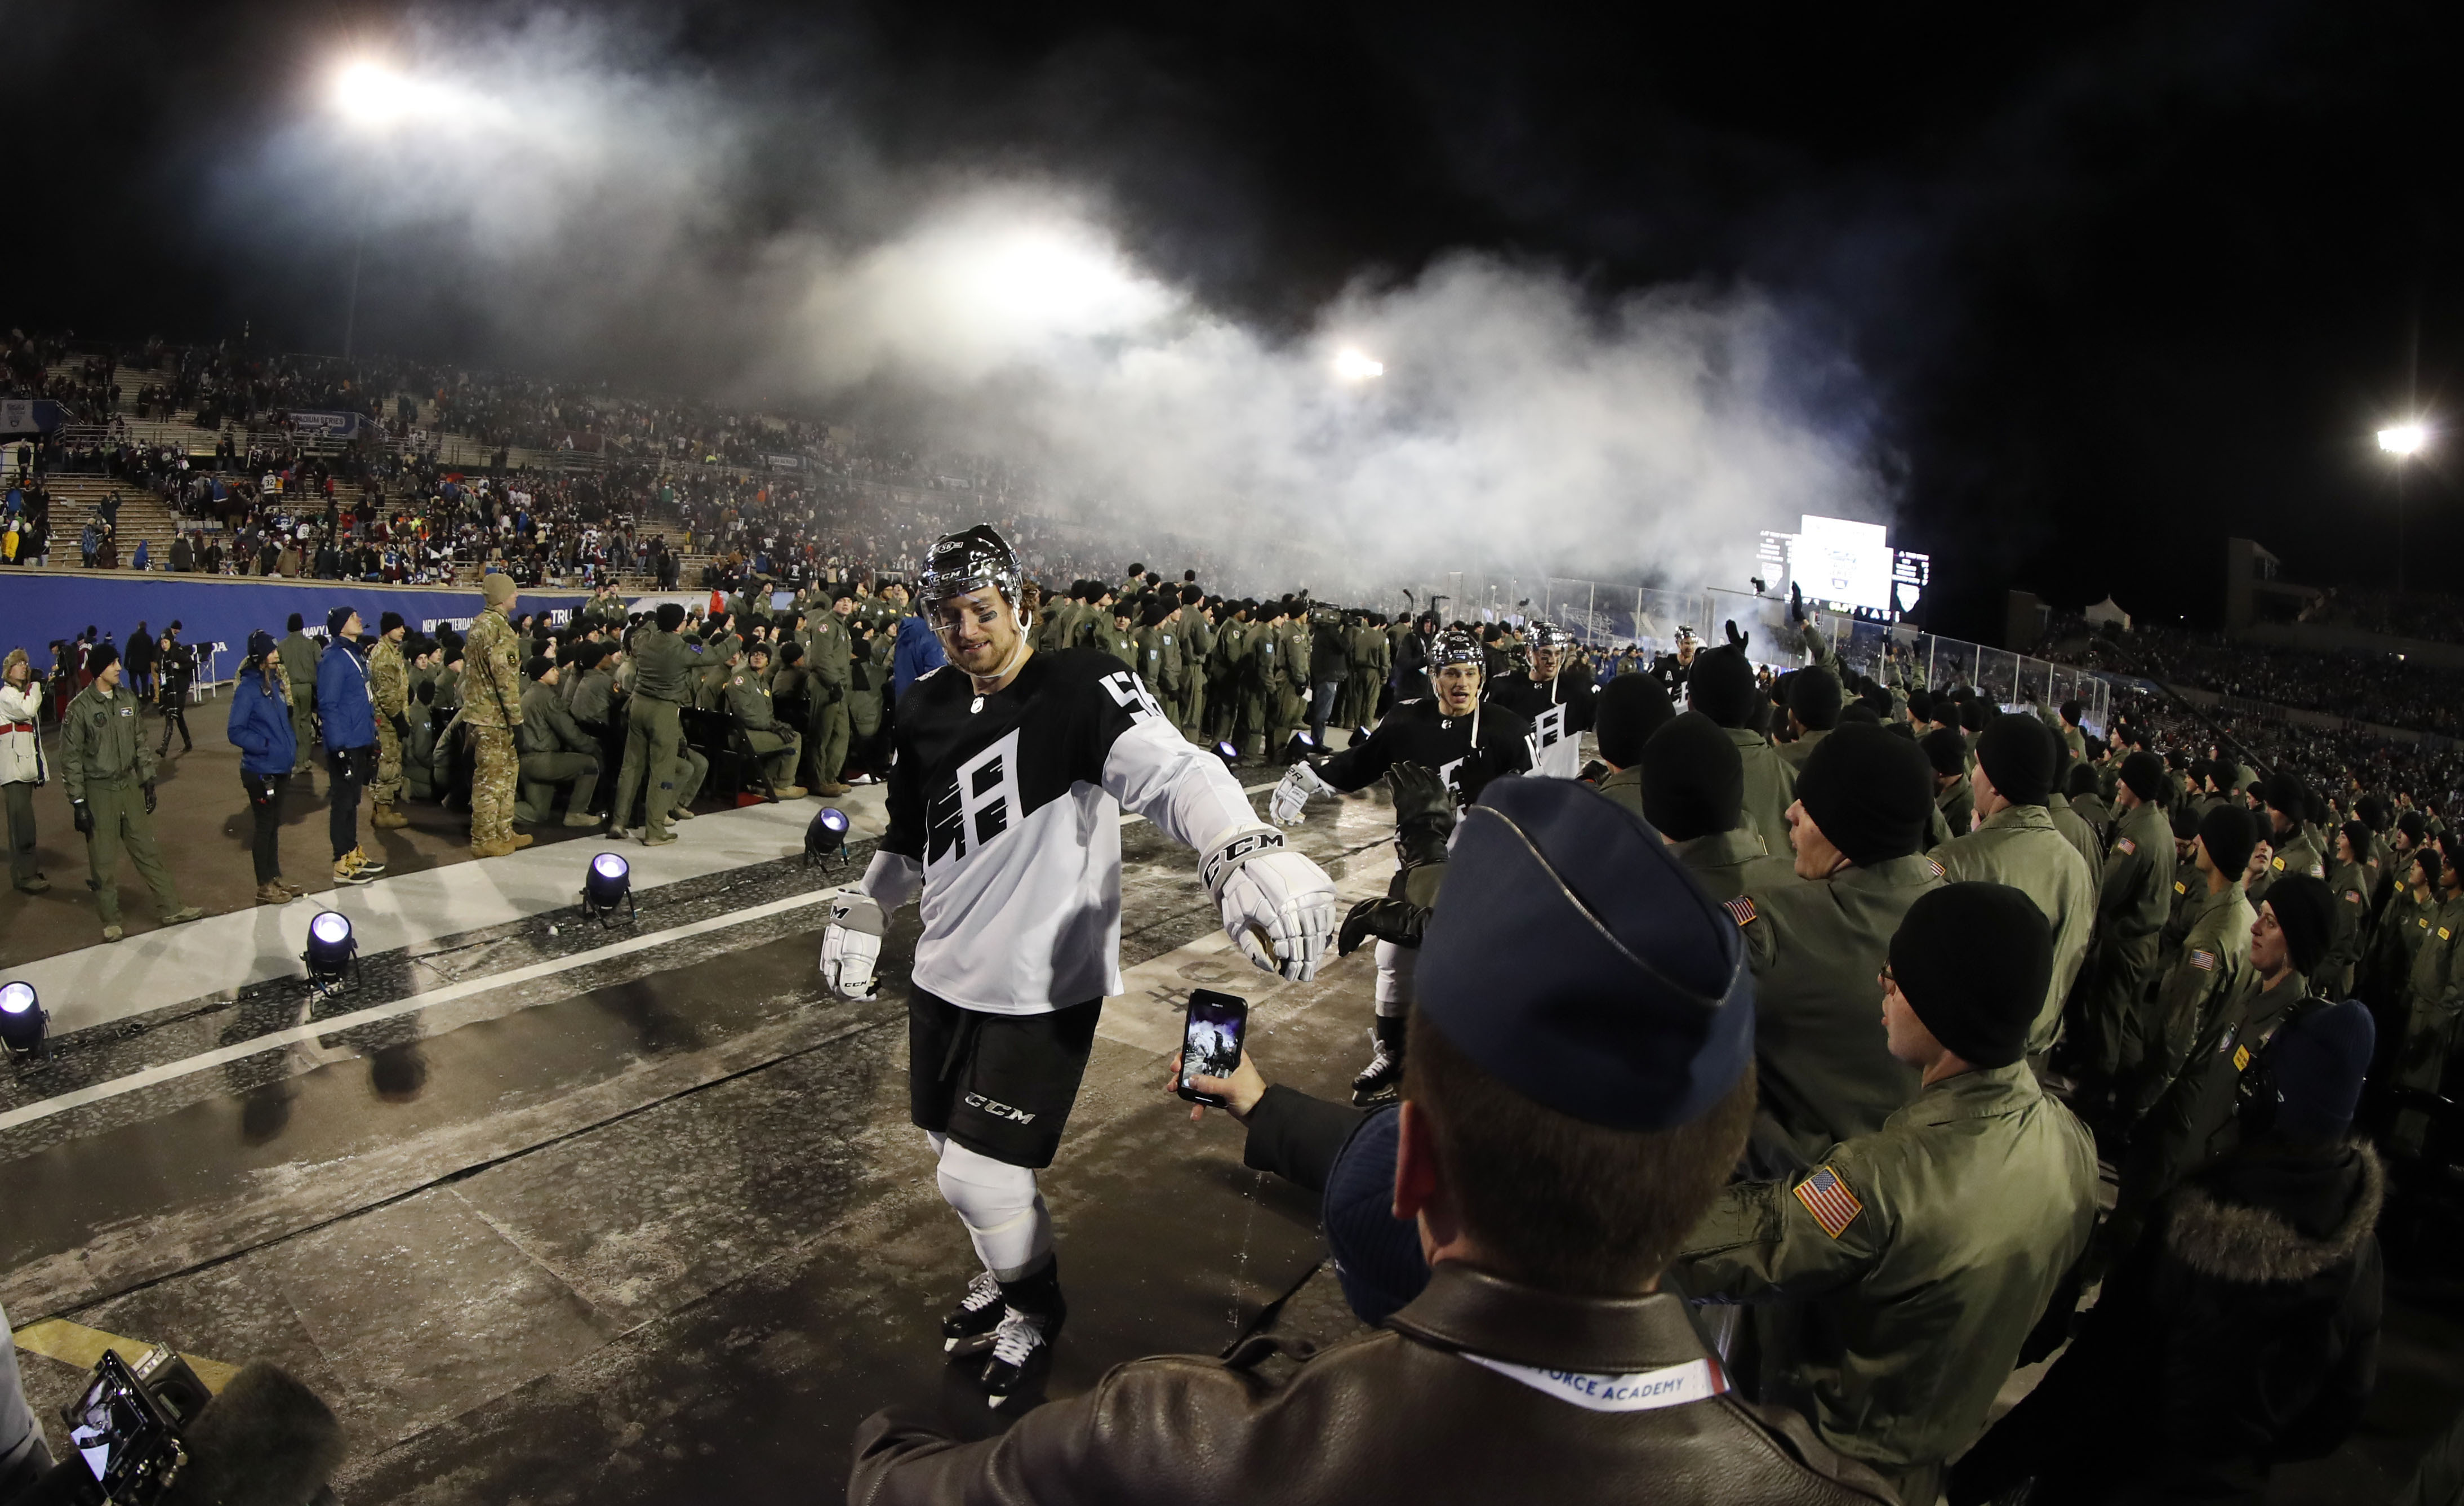 Air Force Academy blames accidents for traffic at NHL game